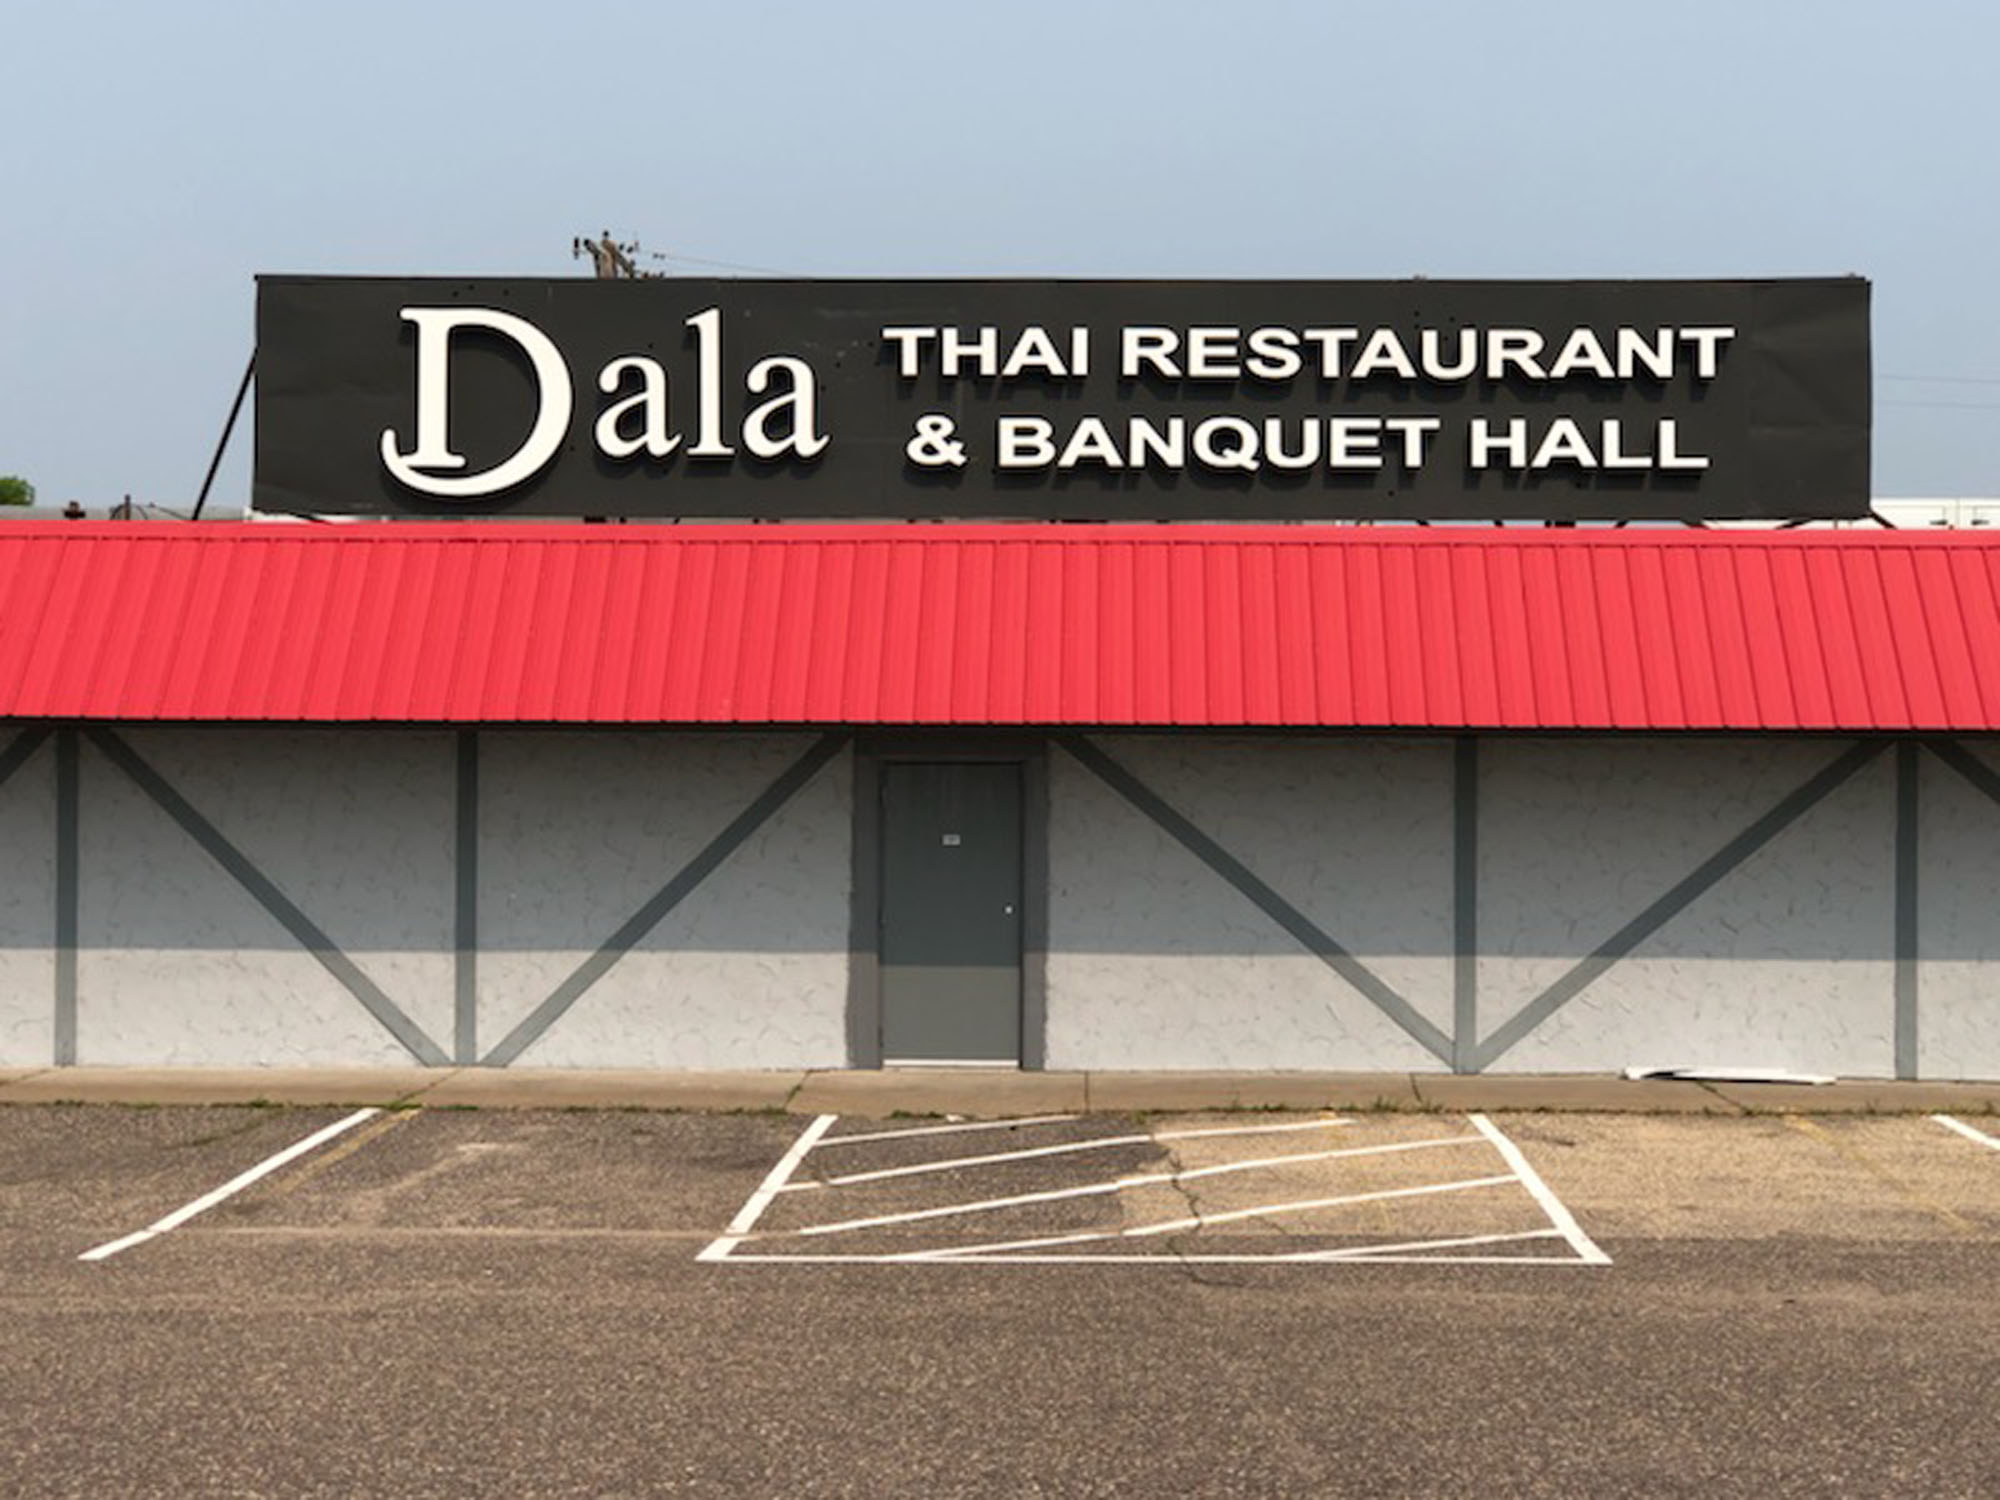 Dala Thai Spring Lake Park, Minnesota Channel letters mounted to aluminum backer White LED illumination - from DeMars Signs Companies near me in the Twin Cities - Minnesota Sign Company